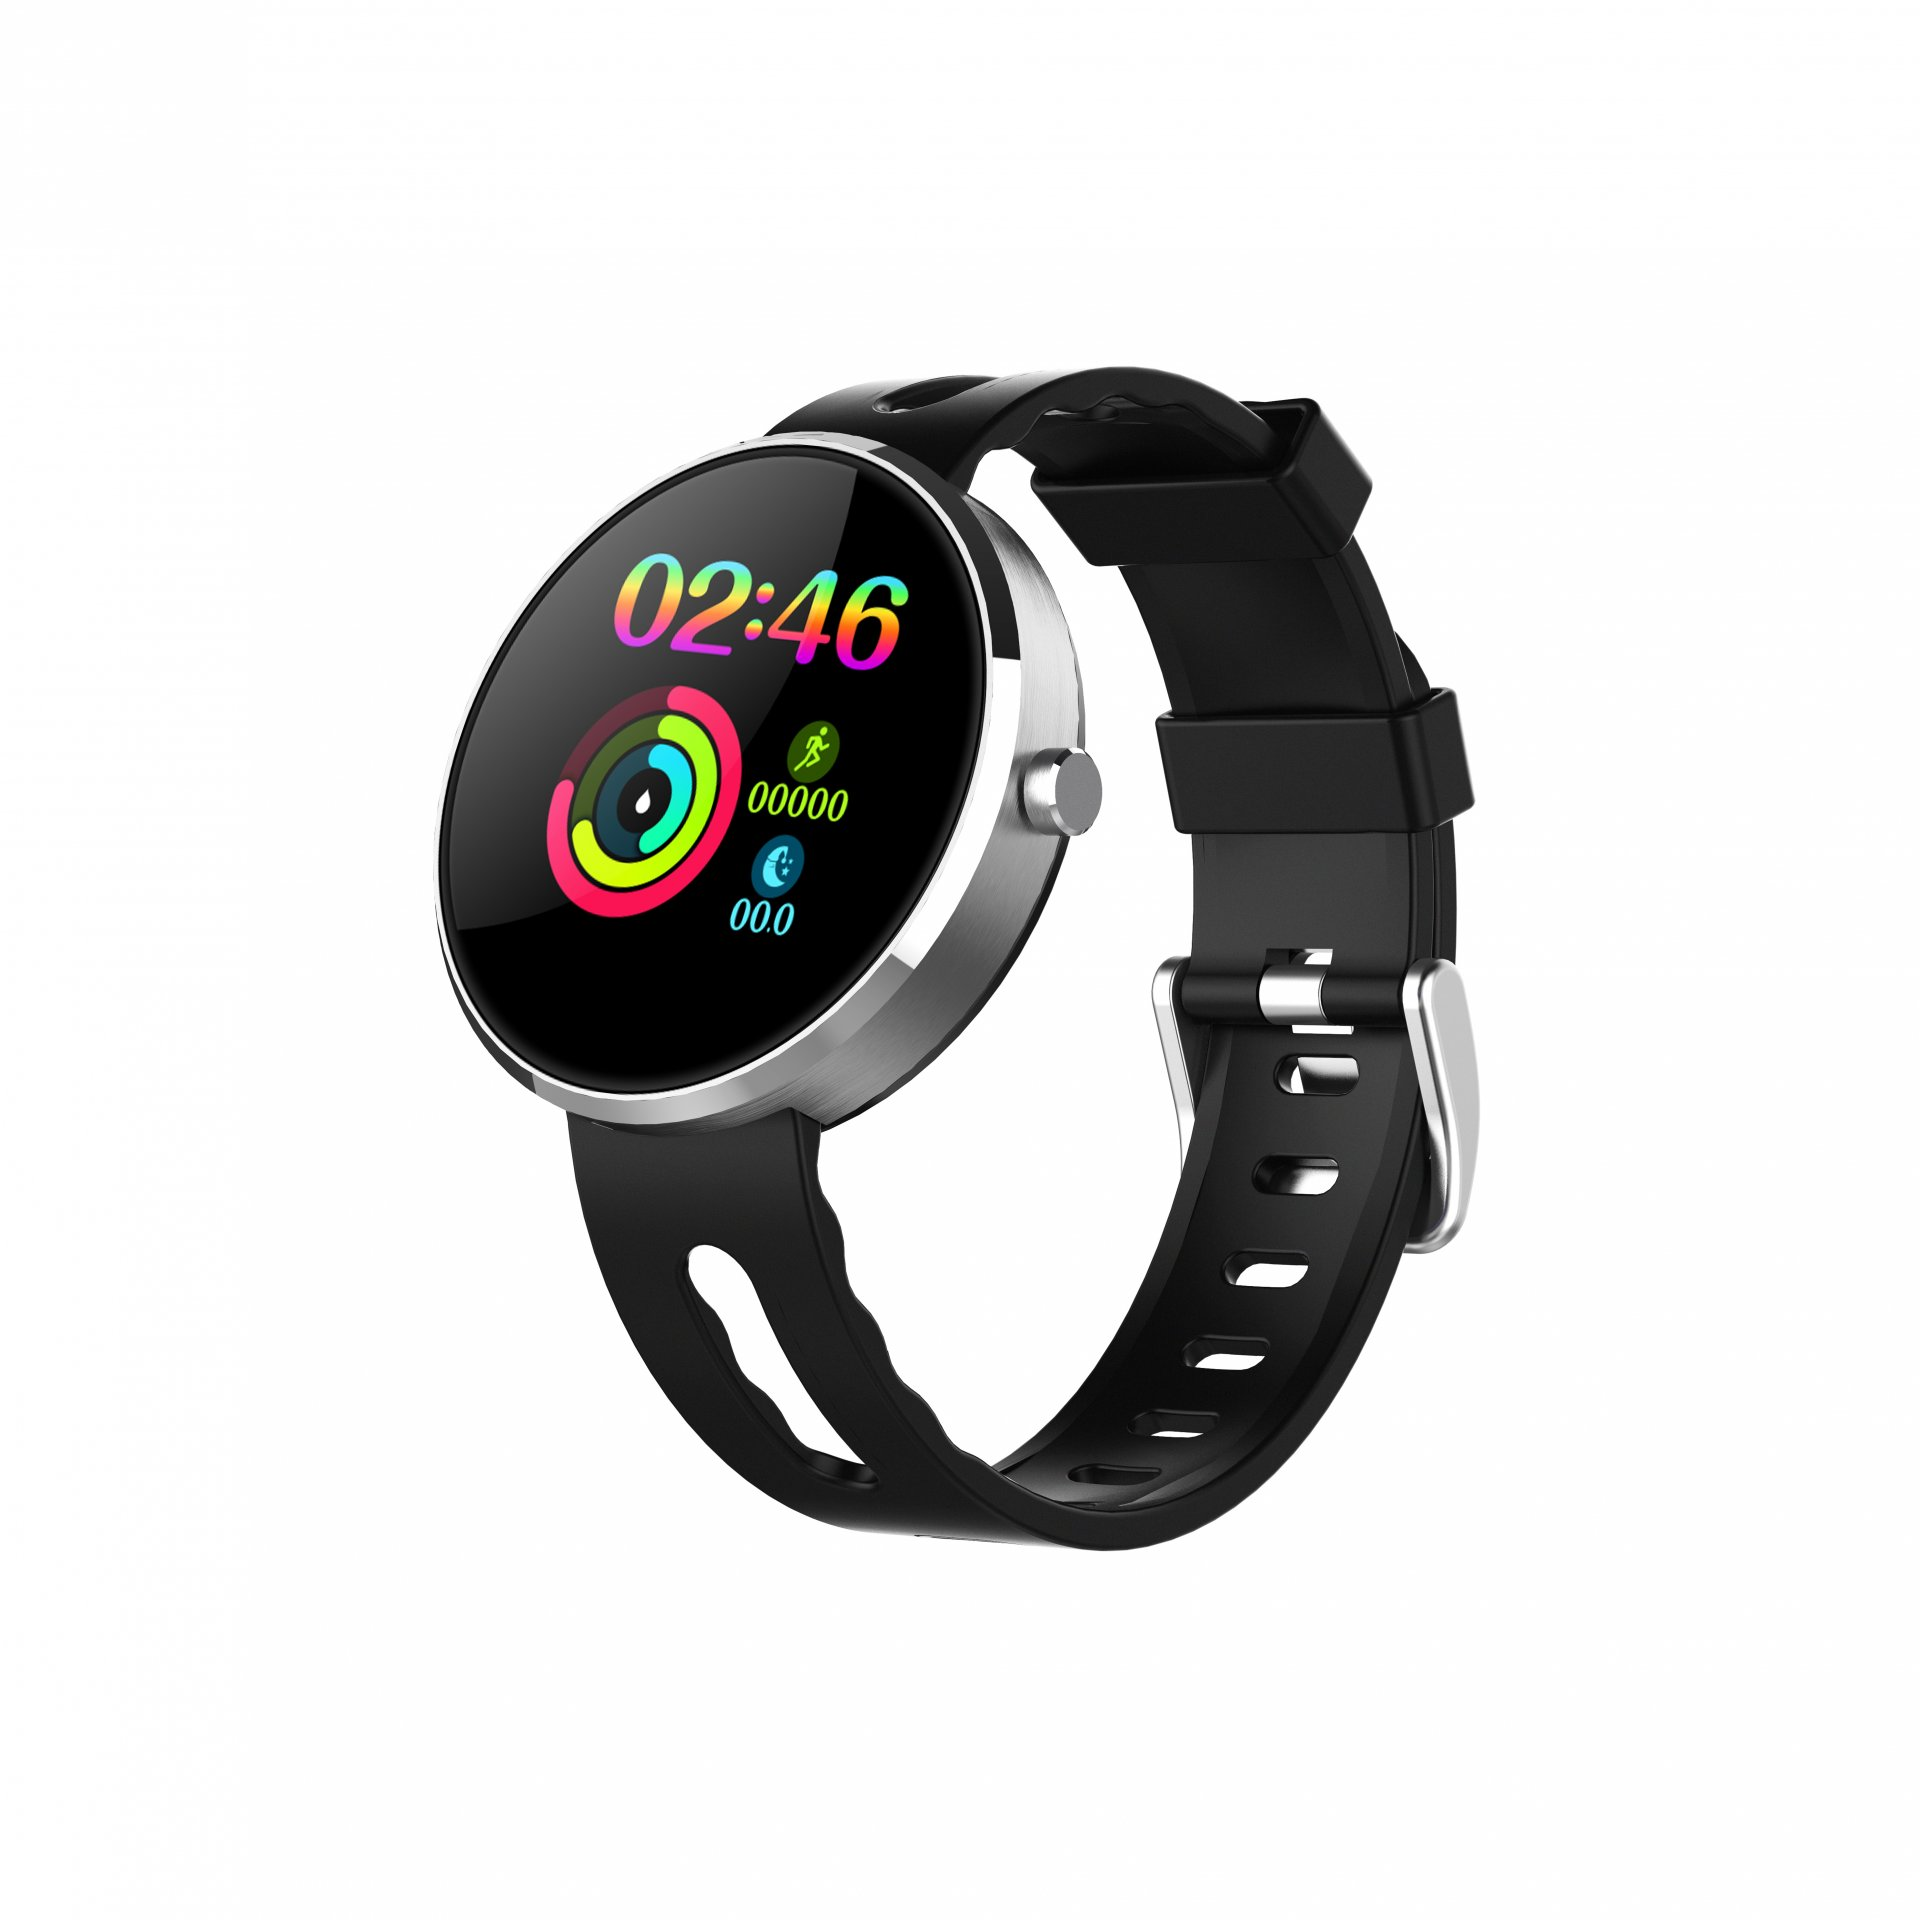 Smart watch DM78 plus